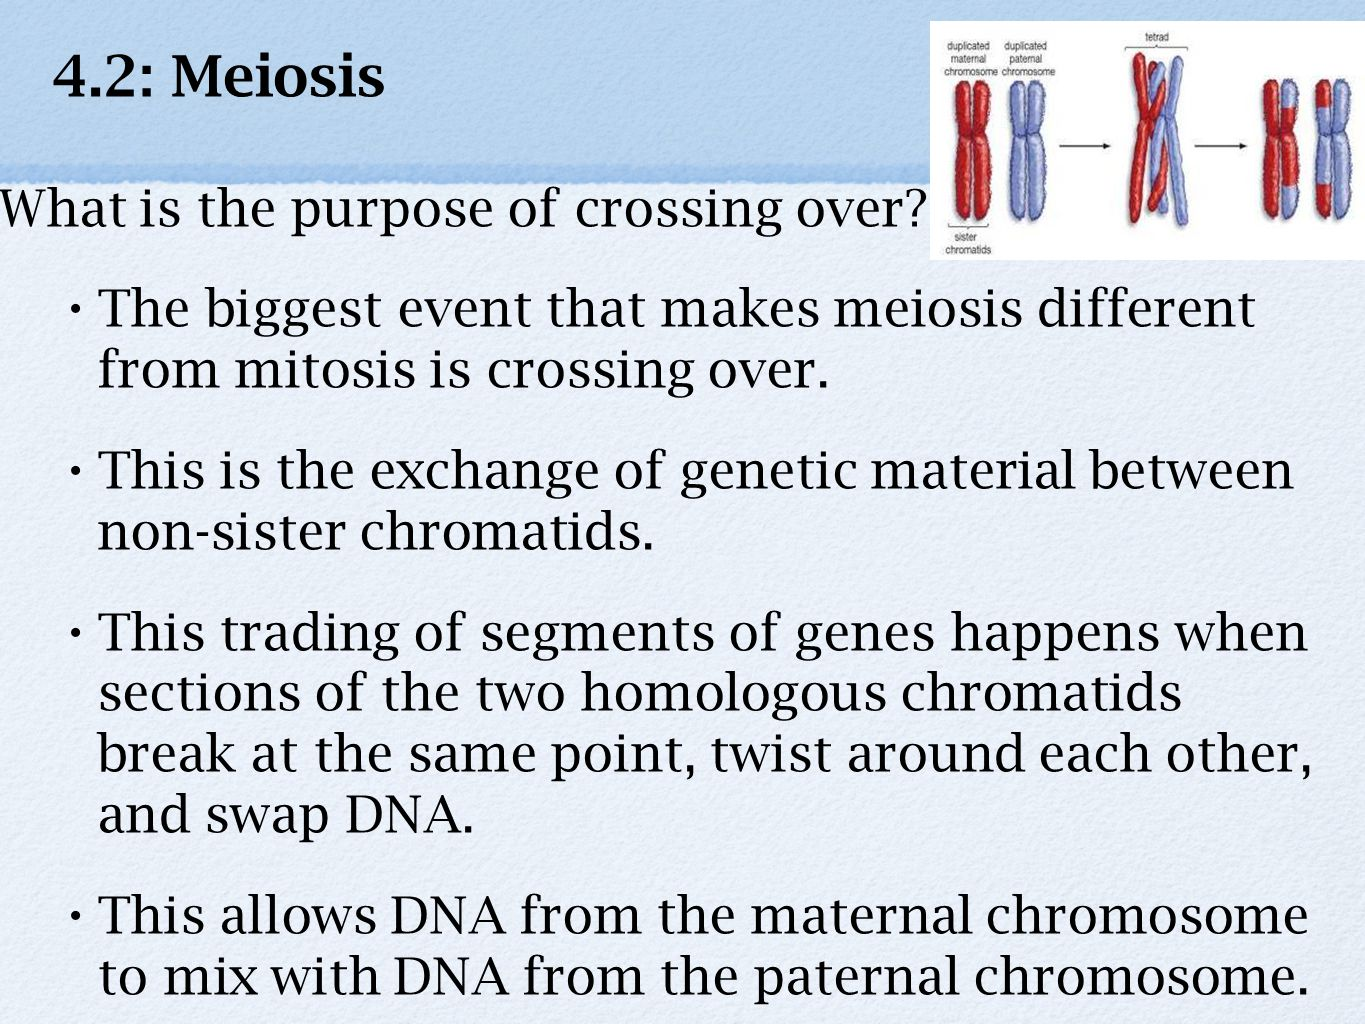 4.2: Meiosis What is the purpose of crossing over